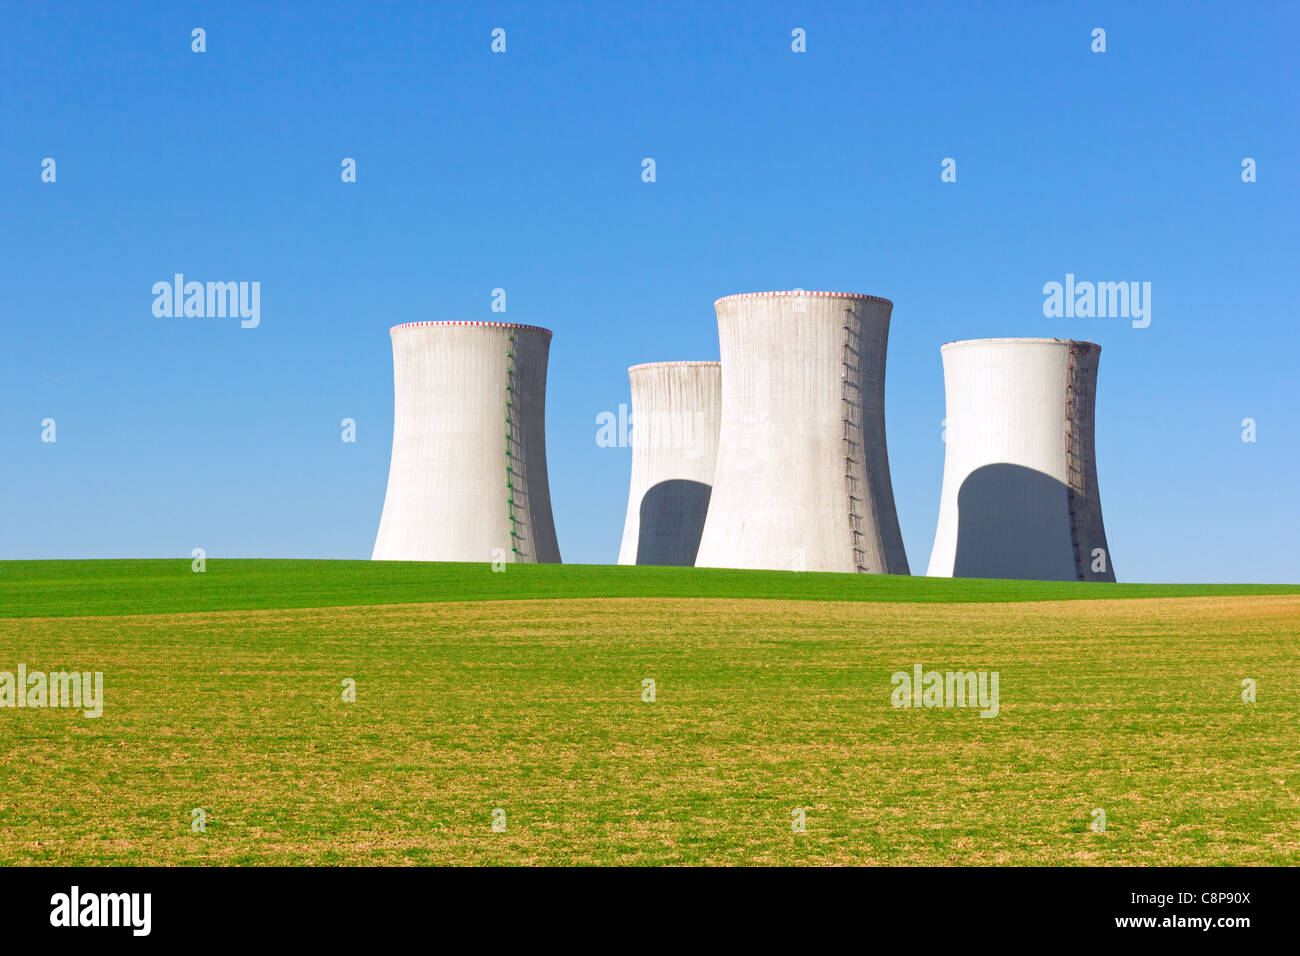 giant cooling towers of nuclear power plant - Stock Image